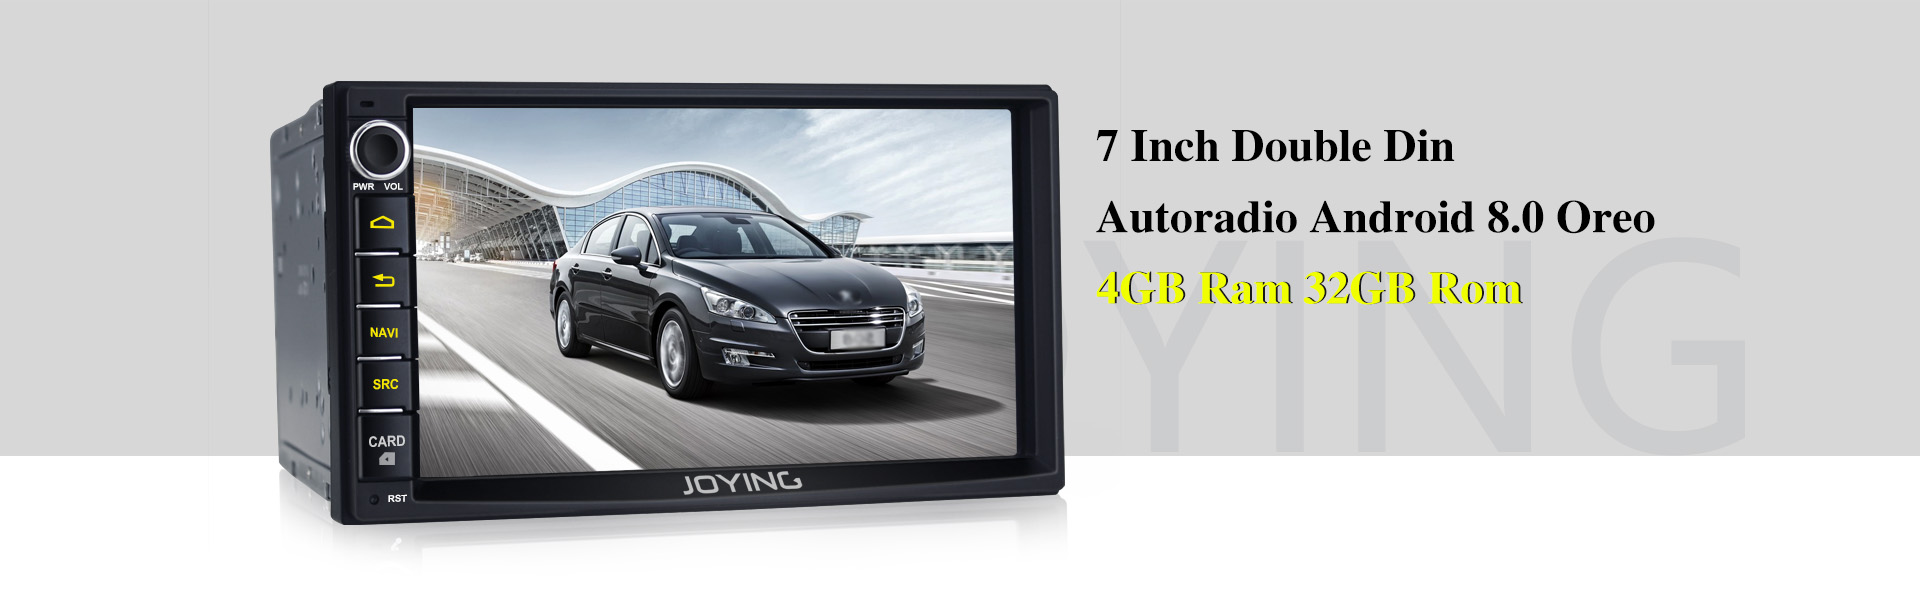 single din head unit, 1 din android autoradio, single din touch screen, 1 din car stereo head unit